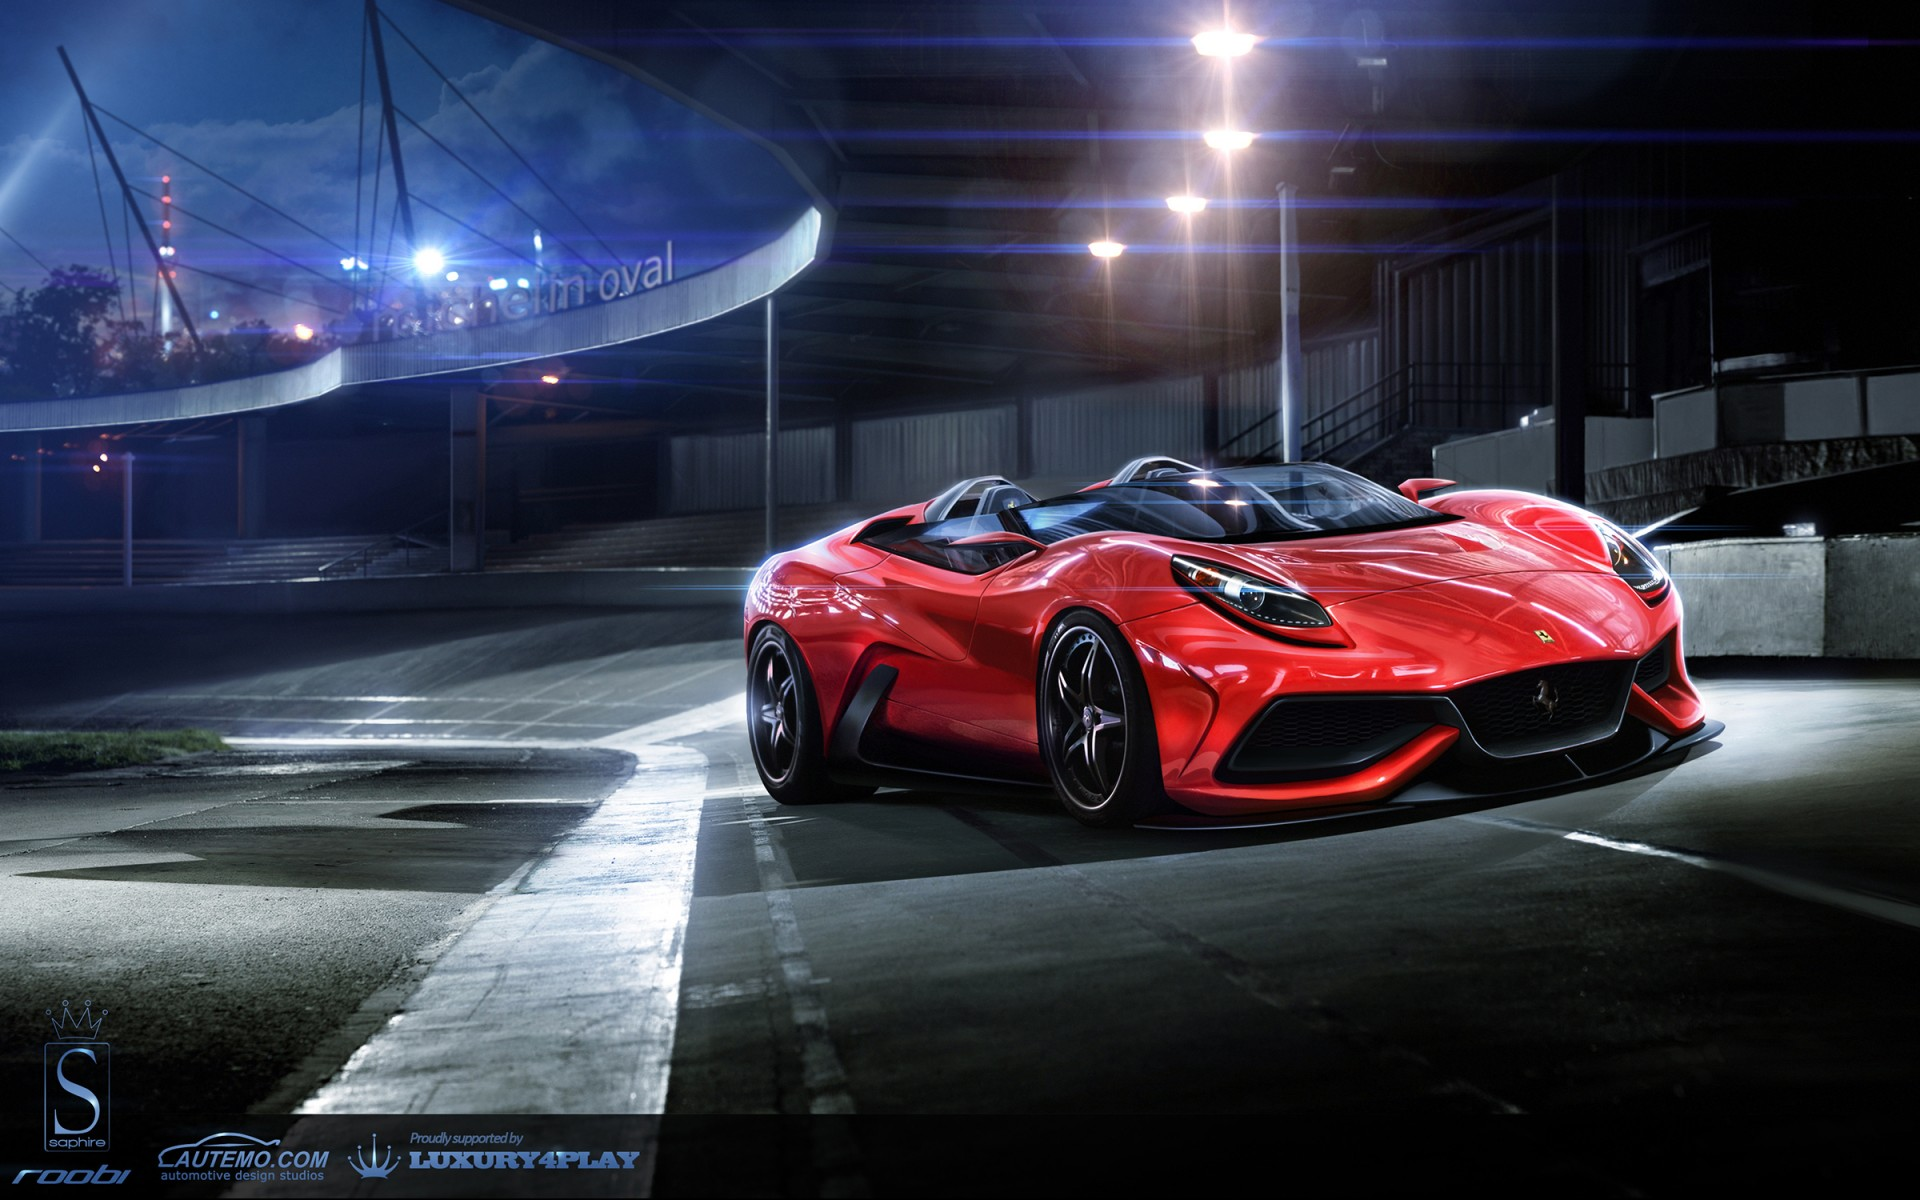 Hd Nature Wallpaper Download For Android Ferrari F12berlinetta Wallpapers Hd Wallpapers Id 11617